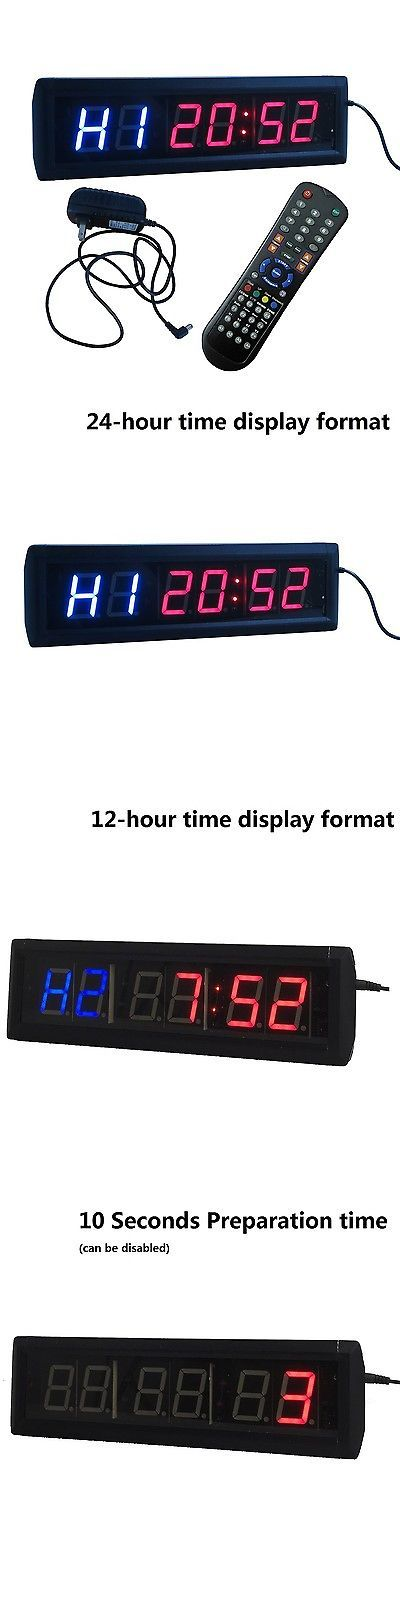 Stopwatches 166149: Ledgital Crossfit Interval Timer Stopwatch Wall Clock W/ Ir Remote Control(14... BUY IT NOW ONLY: $125.15